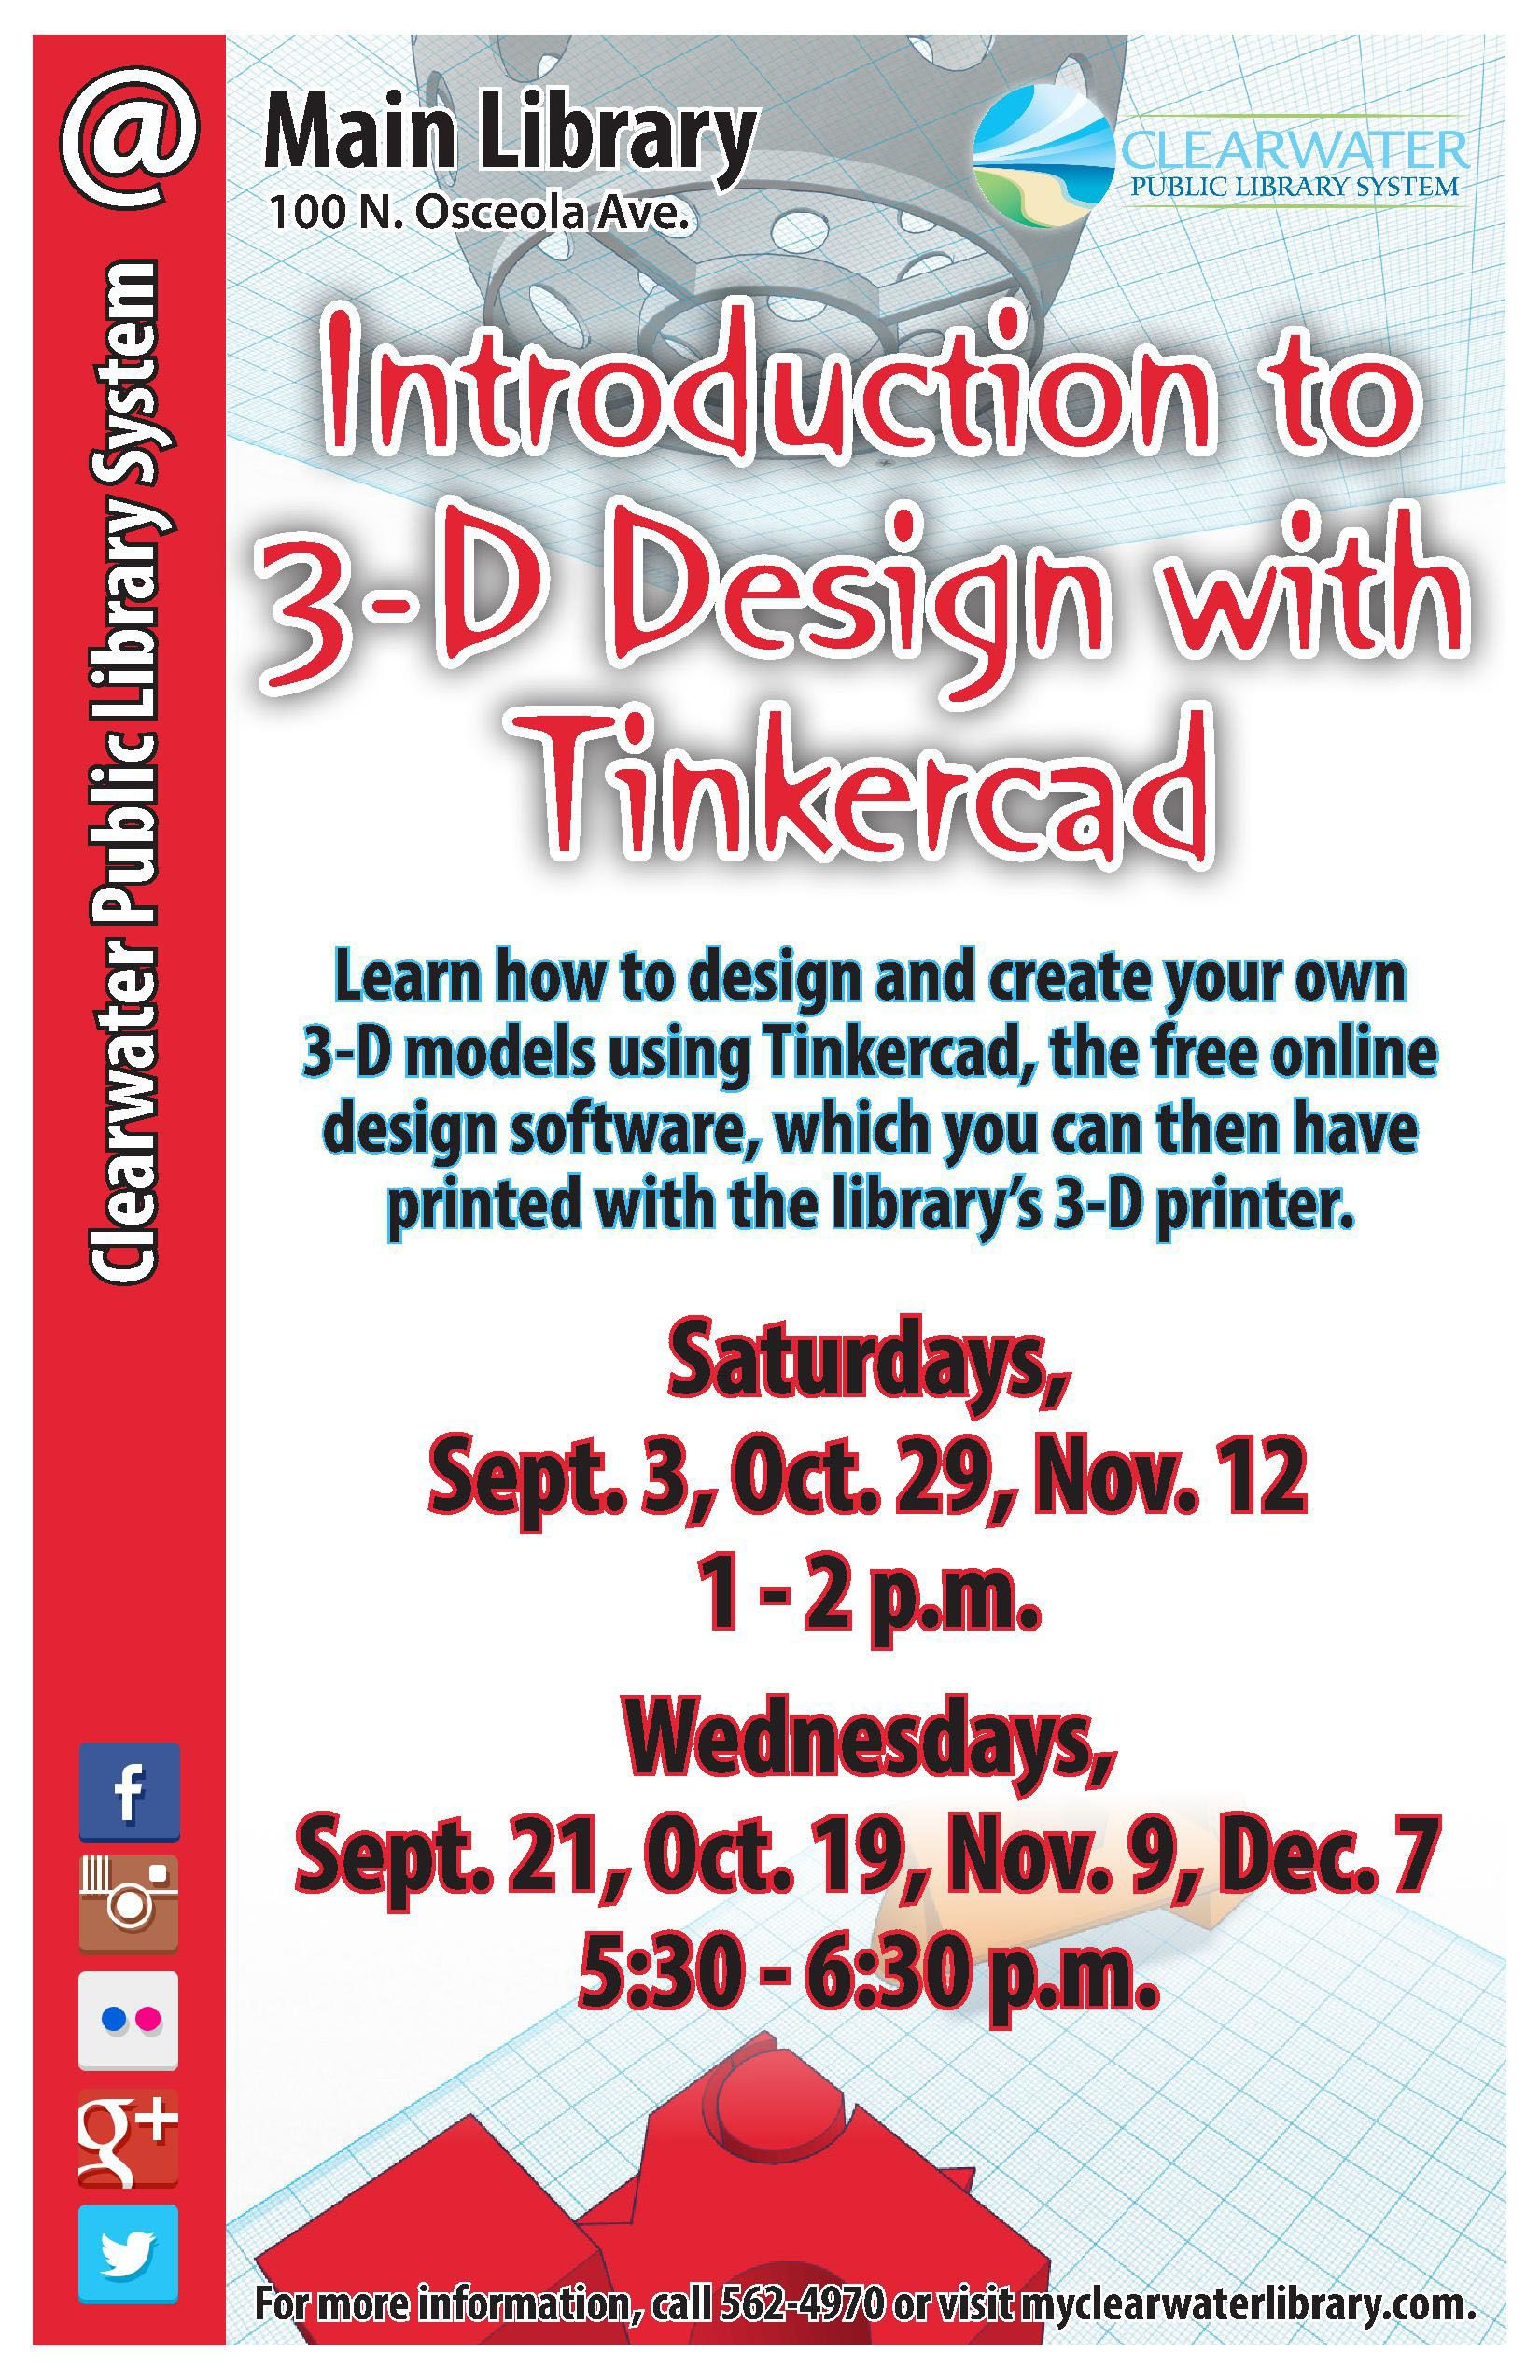 Learn how to design and create your own 3d models using